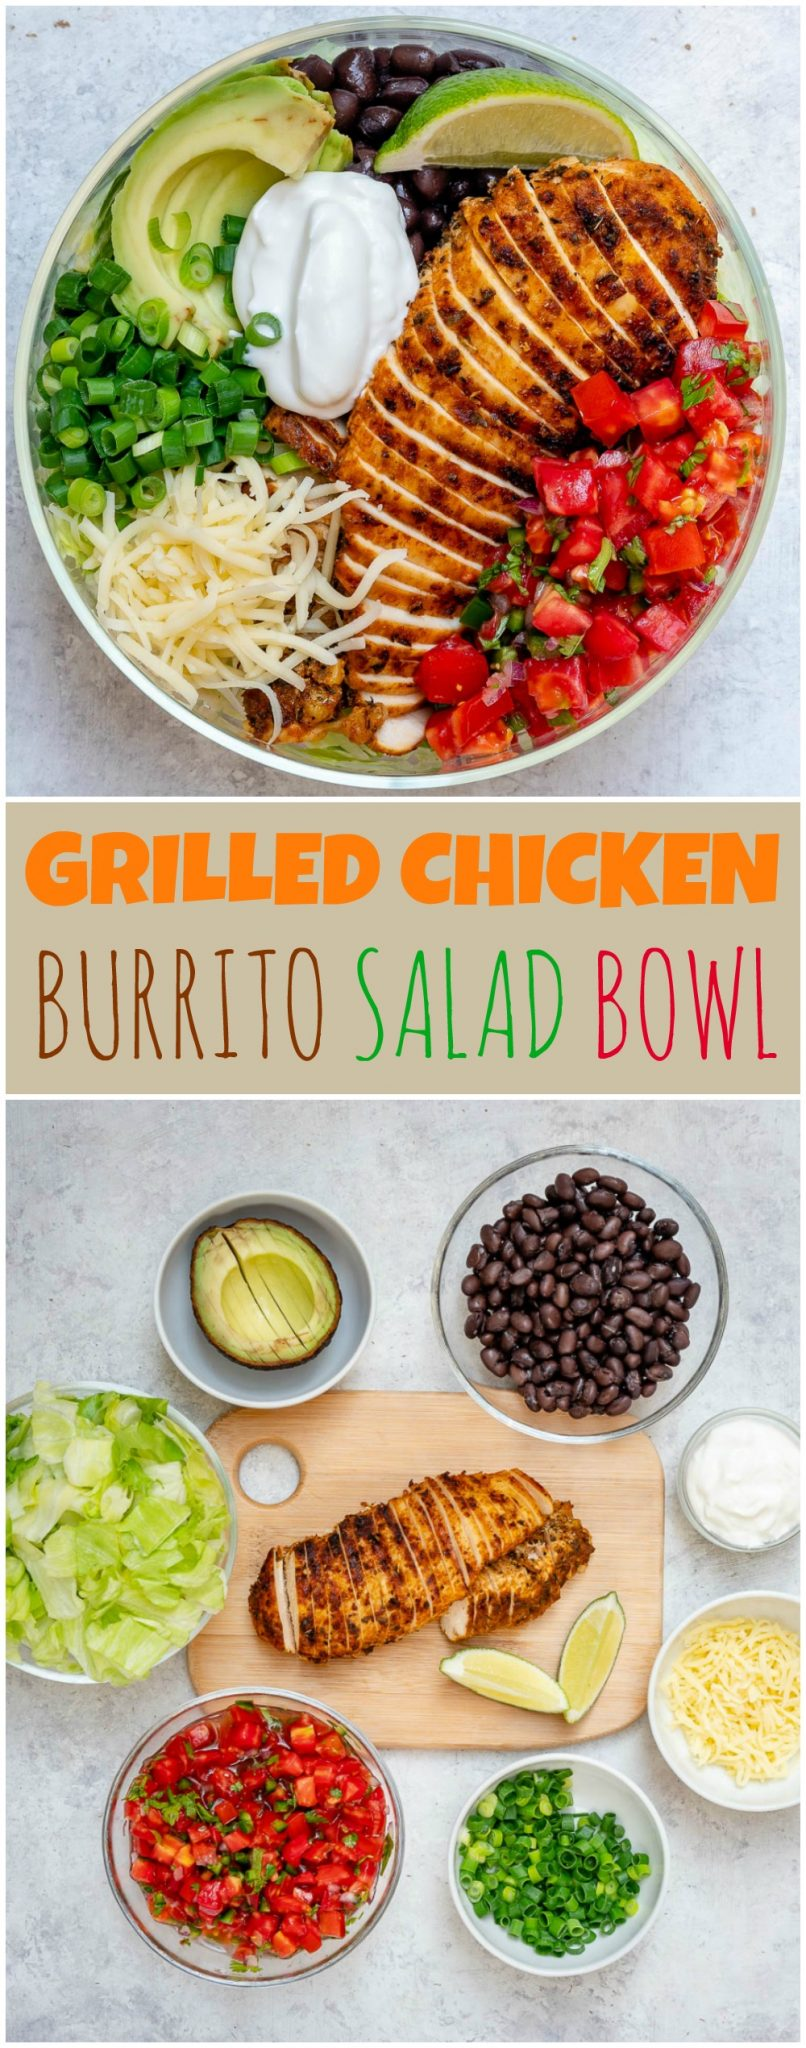 Grilled Chicken Burrito Salad Bowl Clean Eating Recipe